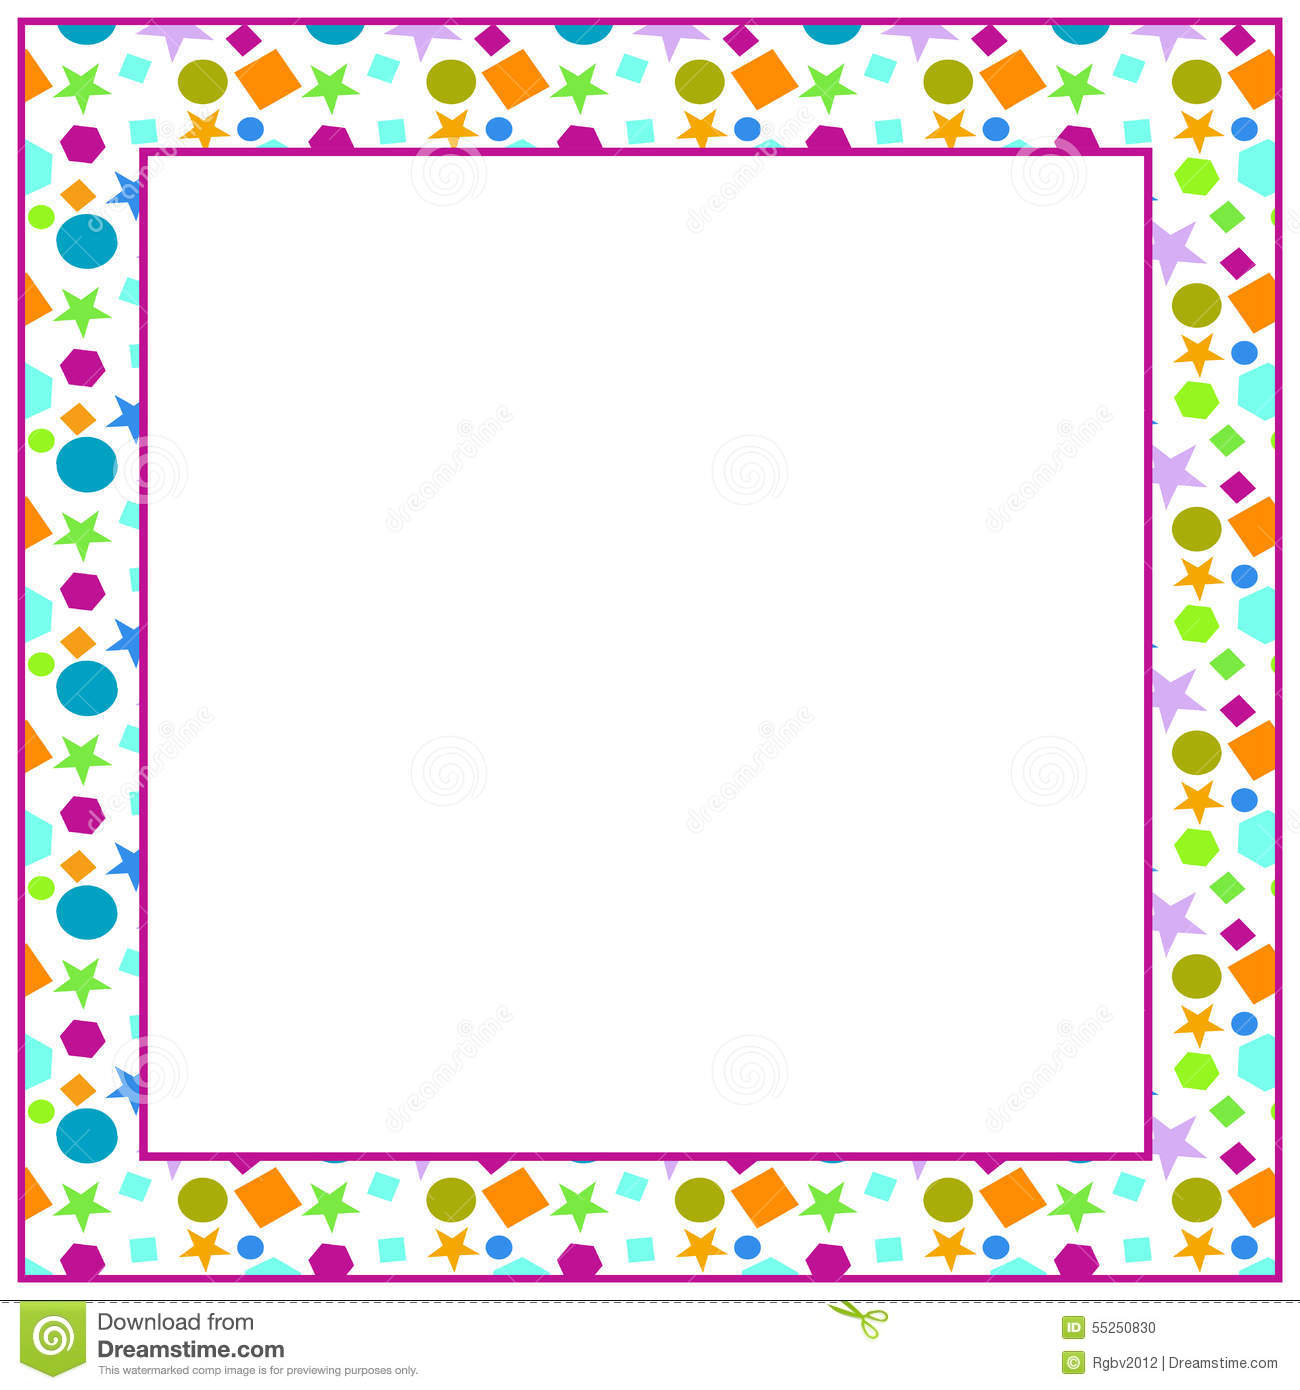 Frame from colored shapes stock vector. Illustration of modern ...